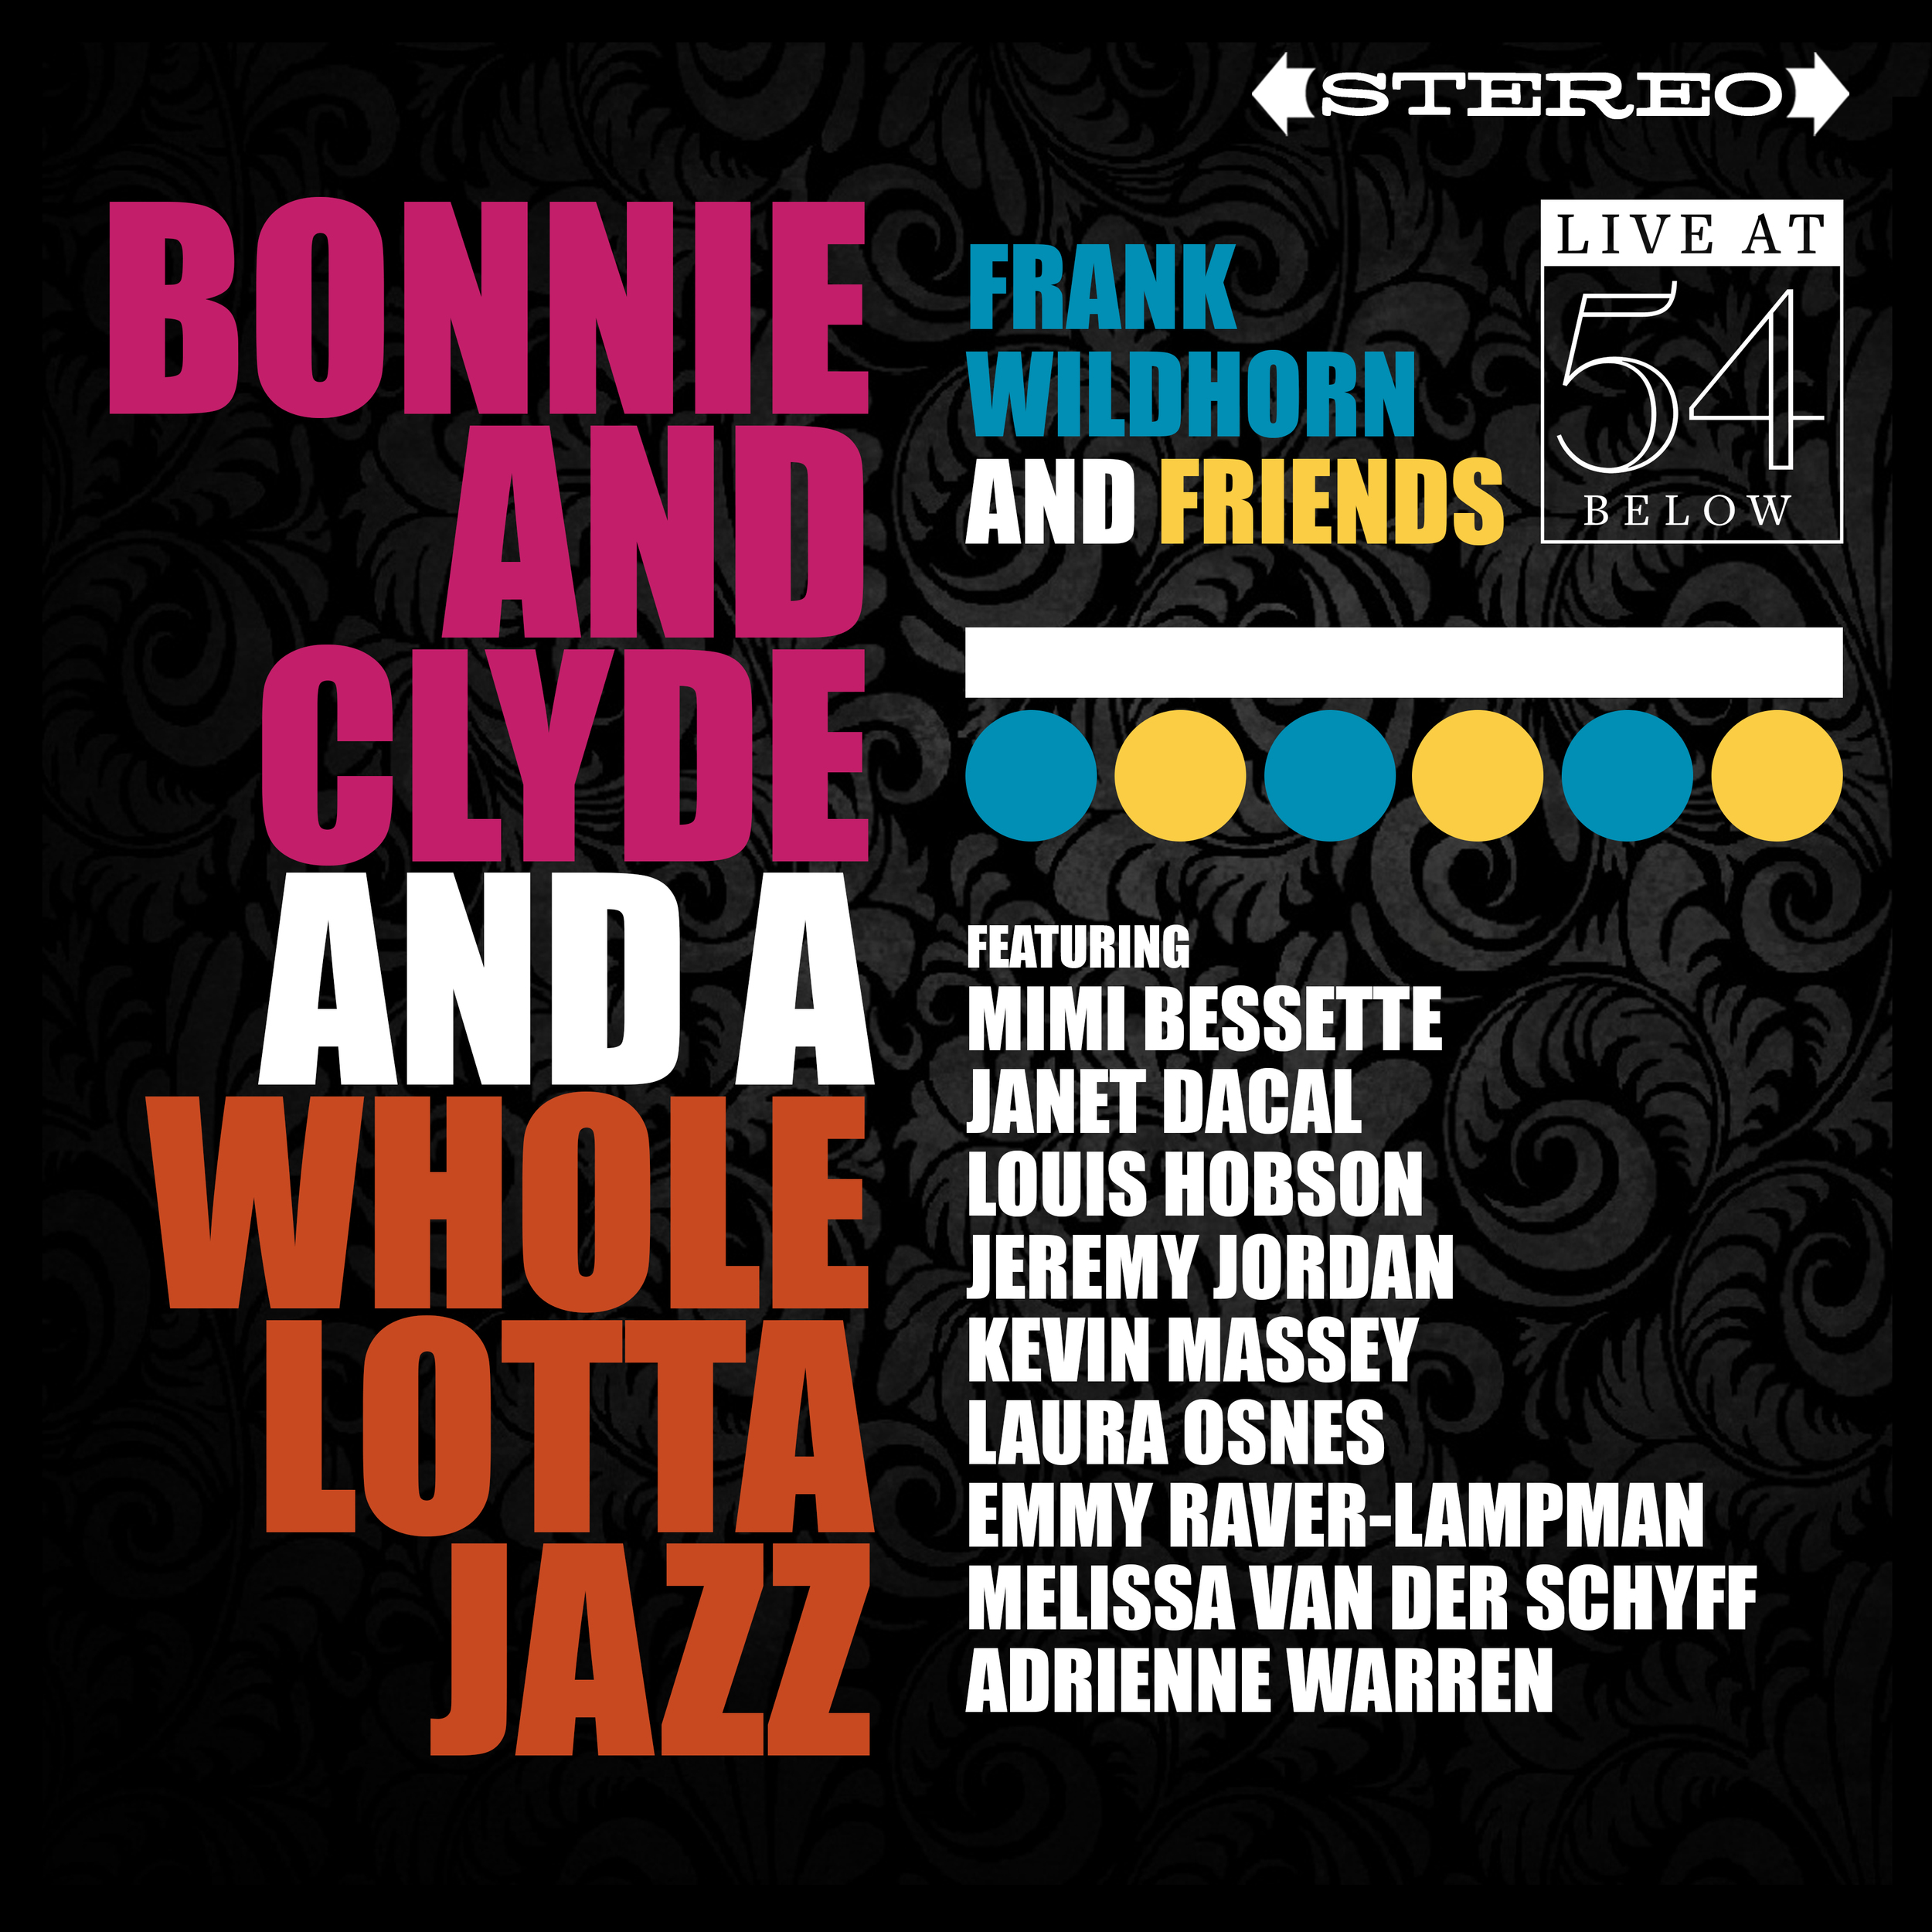 Frank Wildhorn and Friends - Bonnie and Clyde and a Whole Lotta Jazz: Live at 54 Below